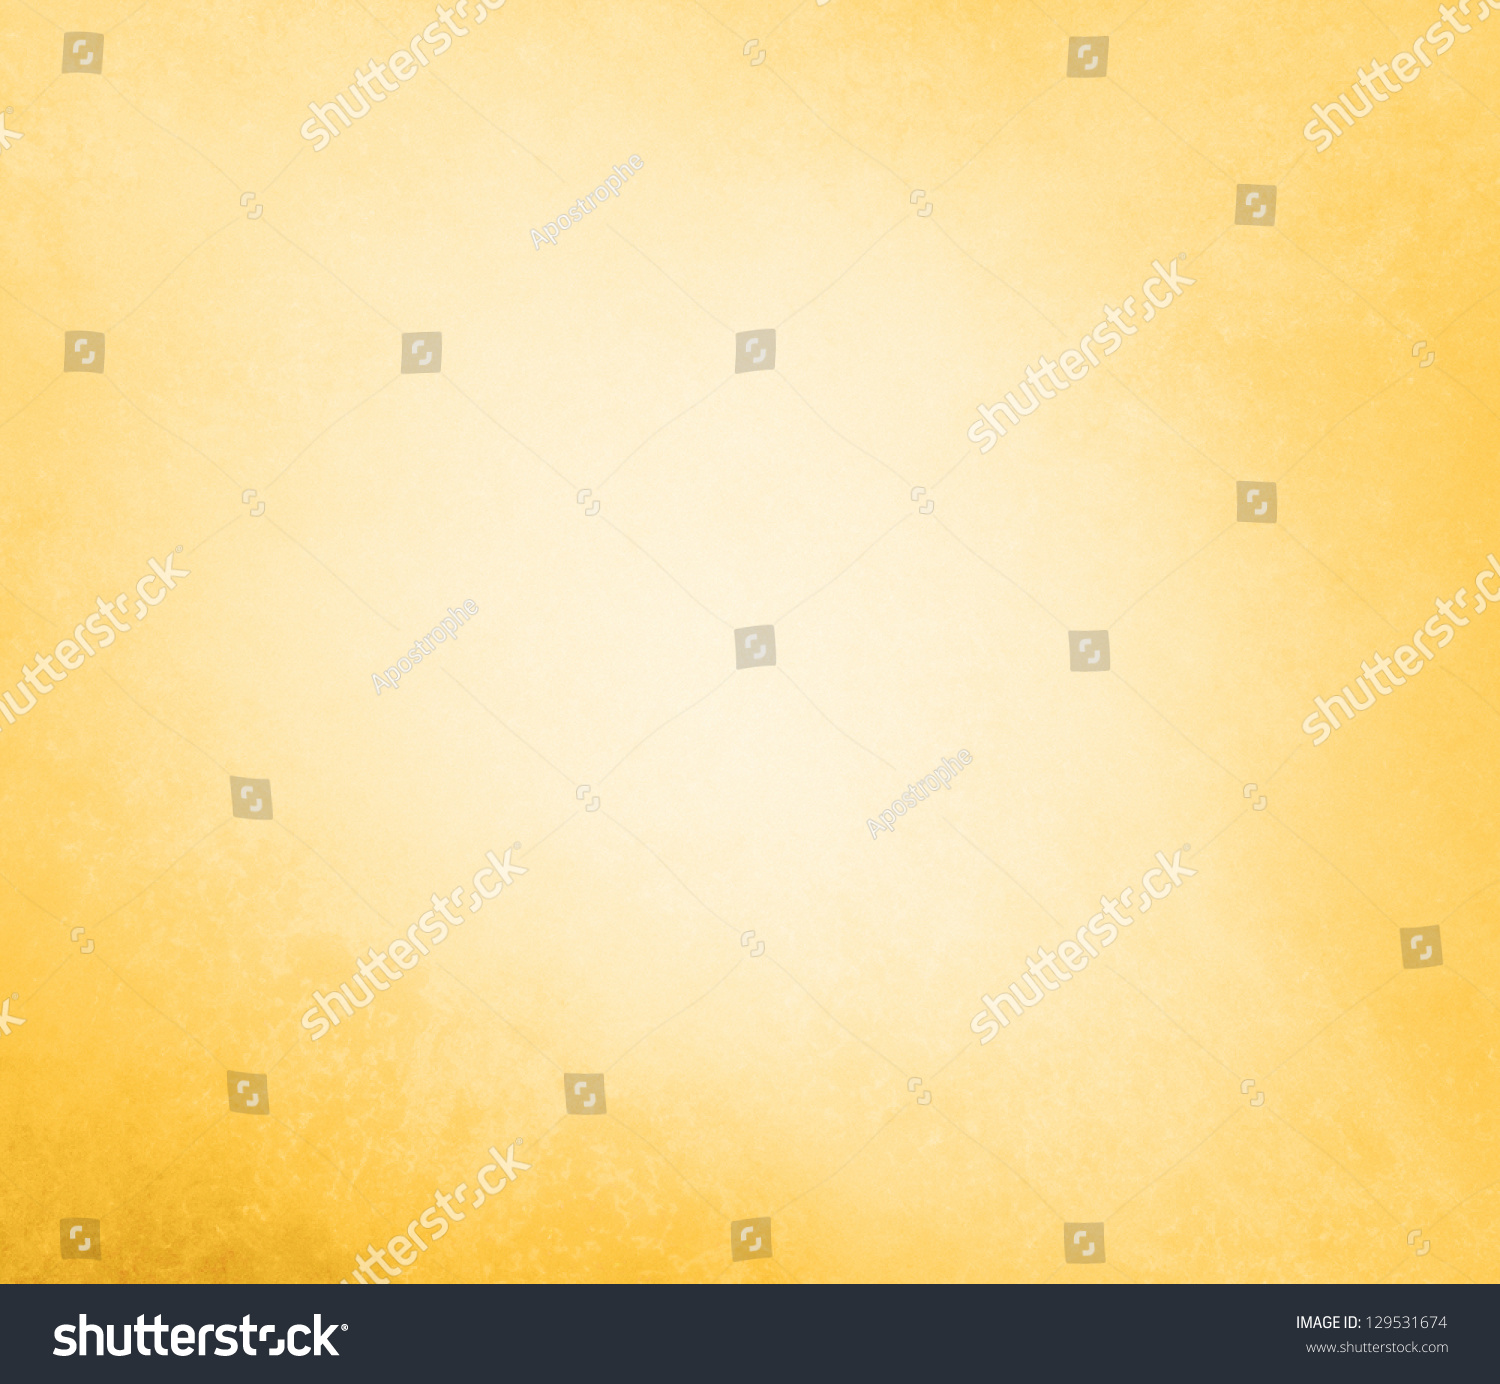 light gold vintage background - photo #21